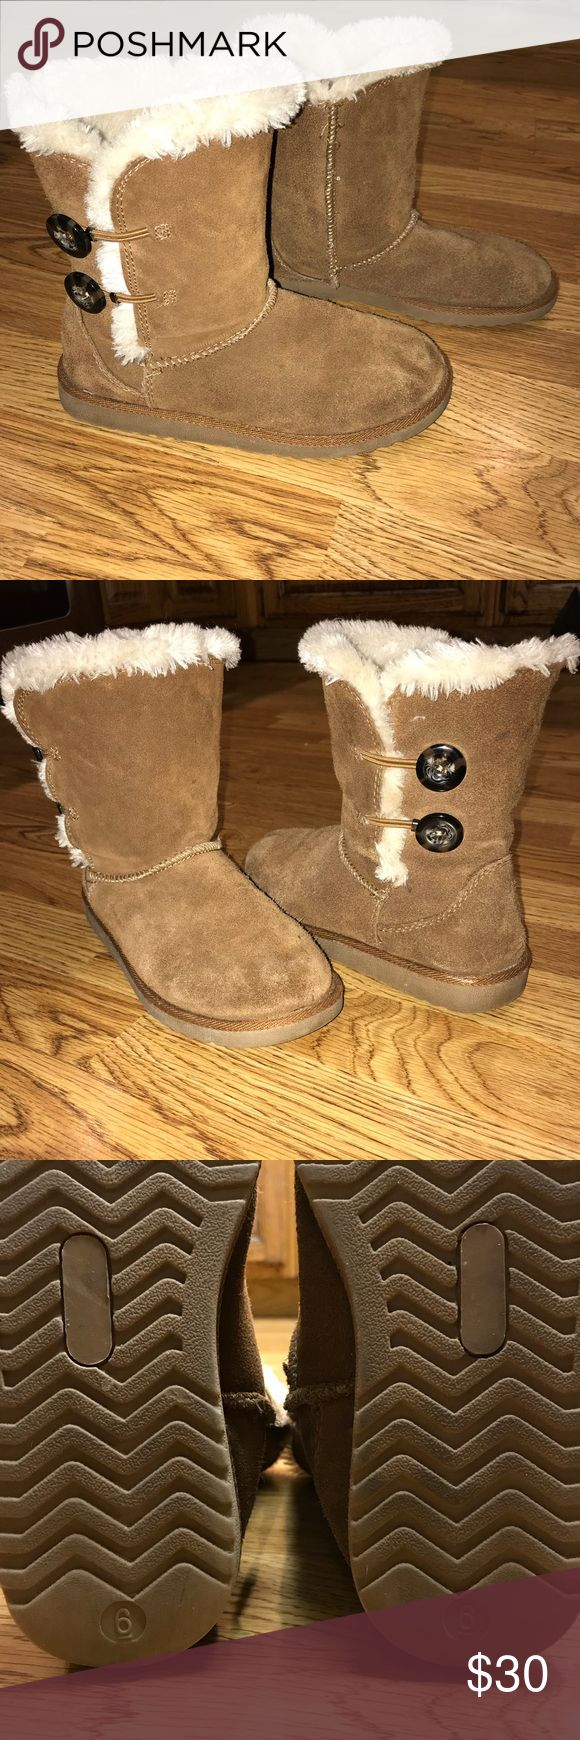 Very Cute Merona Boots 😍 Cute and comfortable Target boots! Perfect to throw on with leggings or jeans. ❤️ Send me an offer! 😍 Merona Shoes Winter & Rain Boots